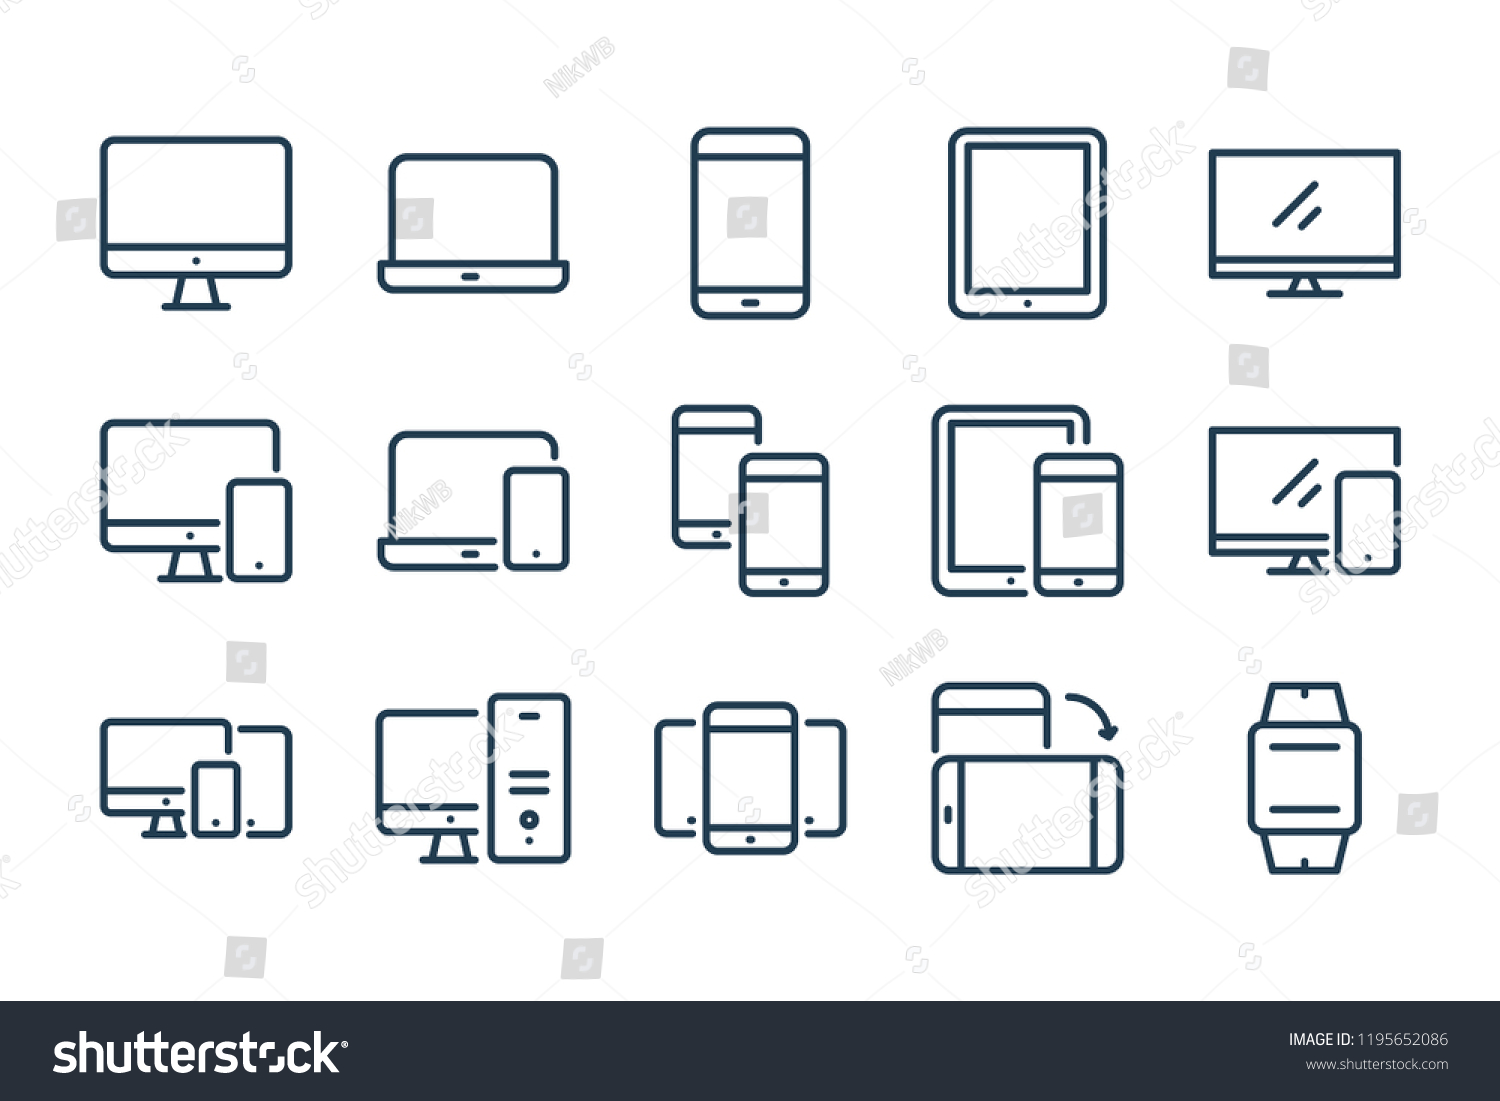 Device line icons. vector linear icon set.